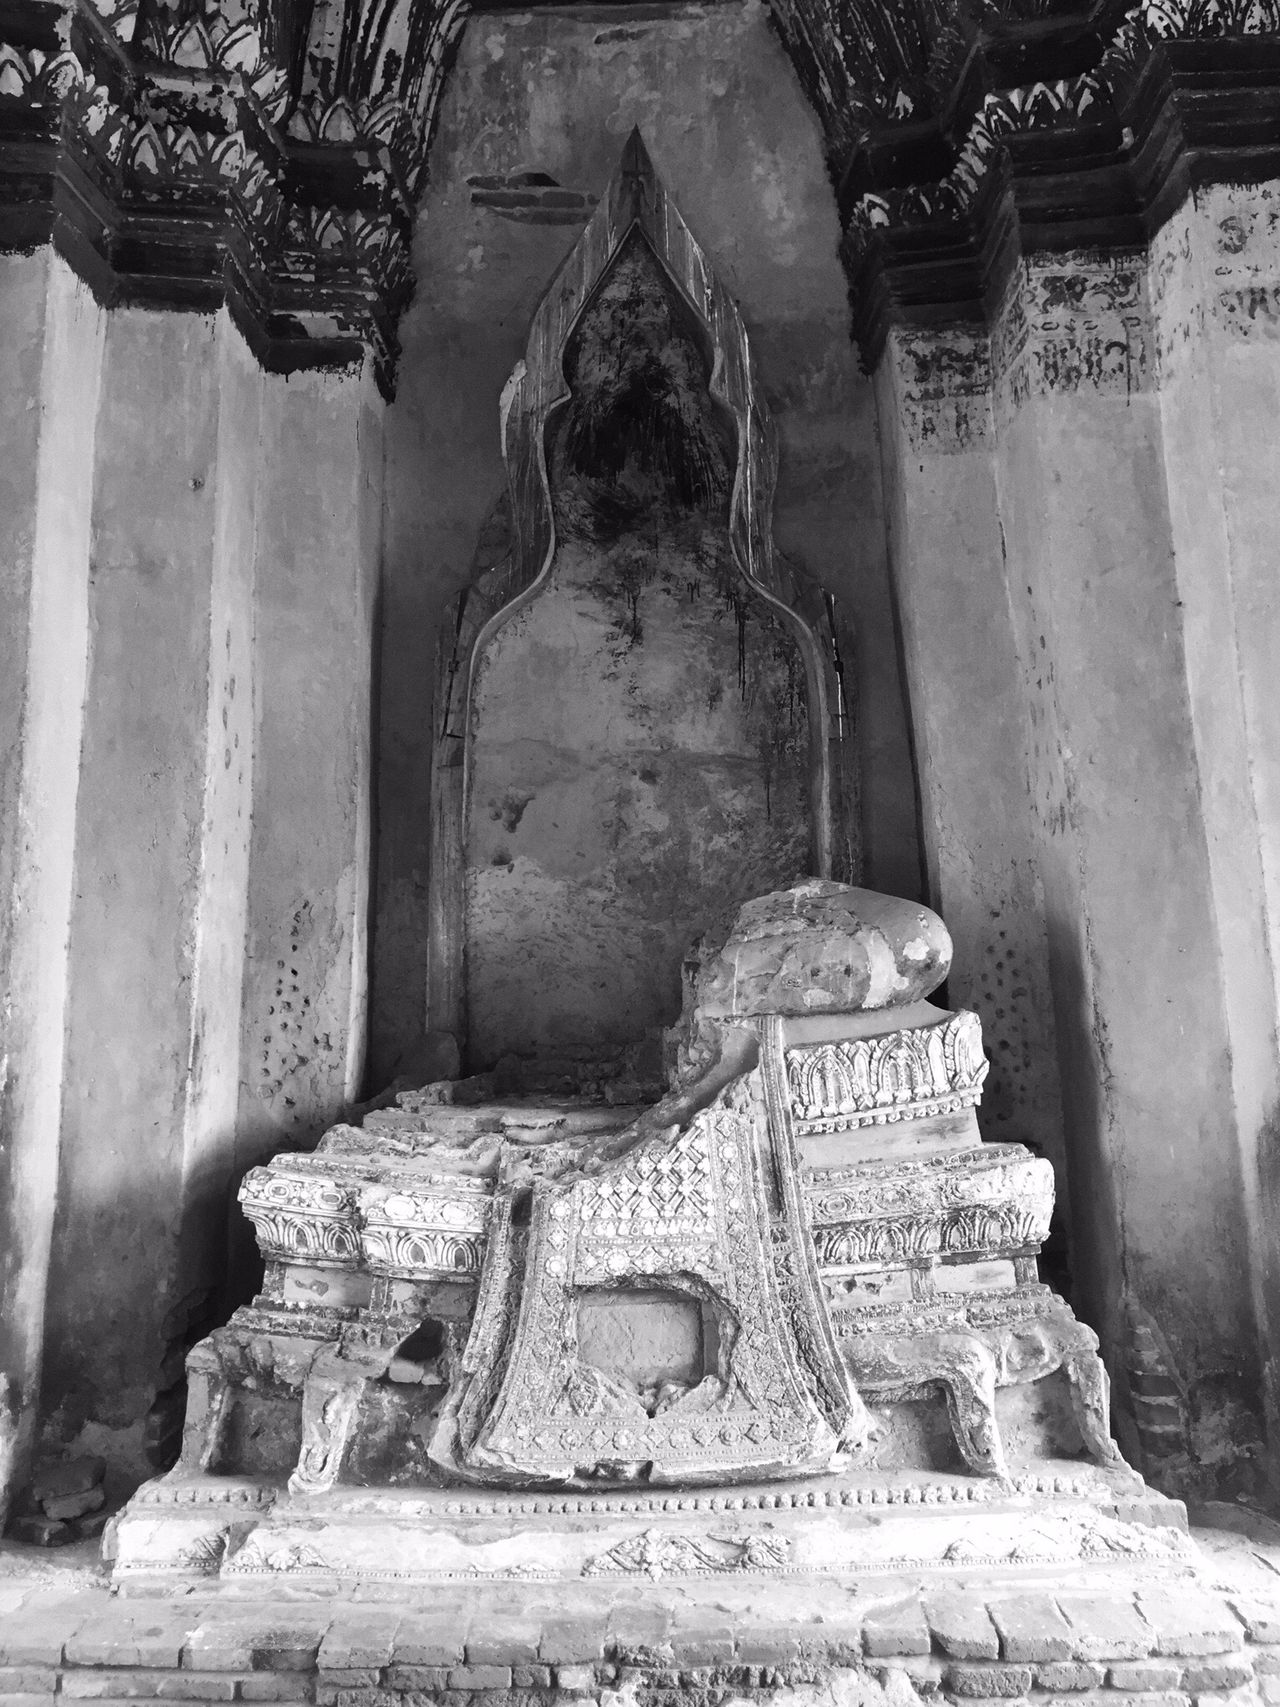 Spirituality Religion Built Structure Architecture Place Of Worship Travel Destinations History Architectural Column The Past Ancient Civilization Ancient Famous Place Obsolete Tourism Archeology Archaeology Stone Weathered Memories Ayuthaya Thailand Temple Budda Statue Budda In Temple Grounds